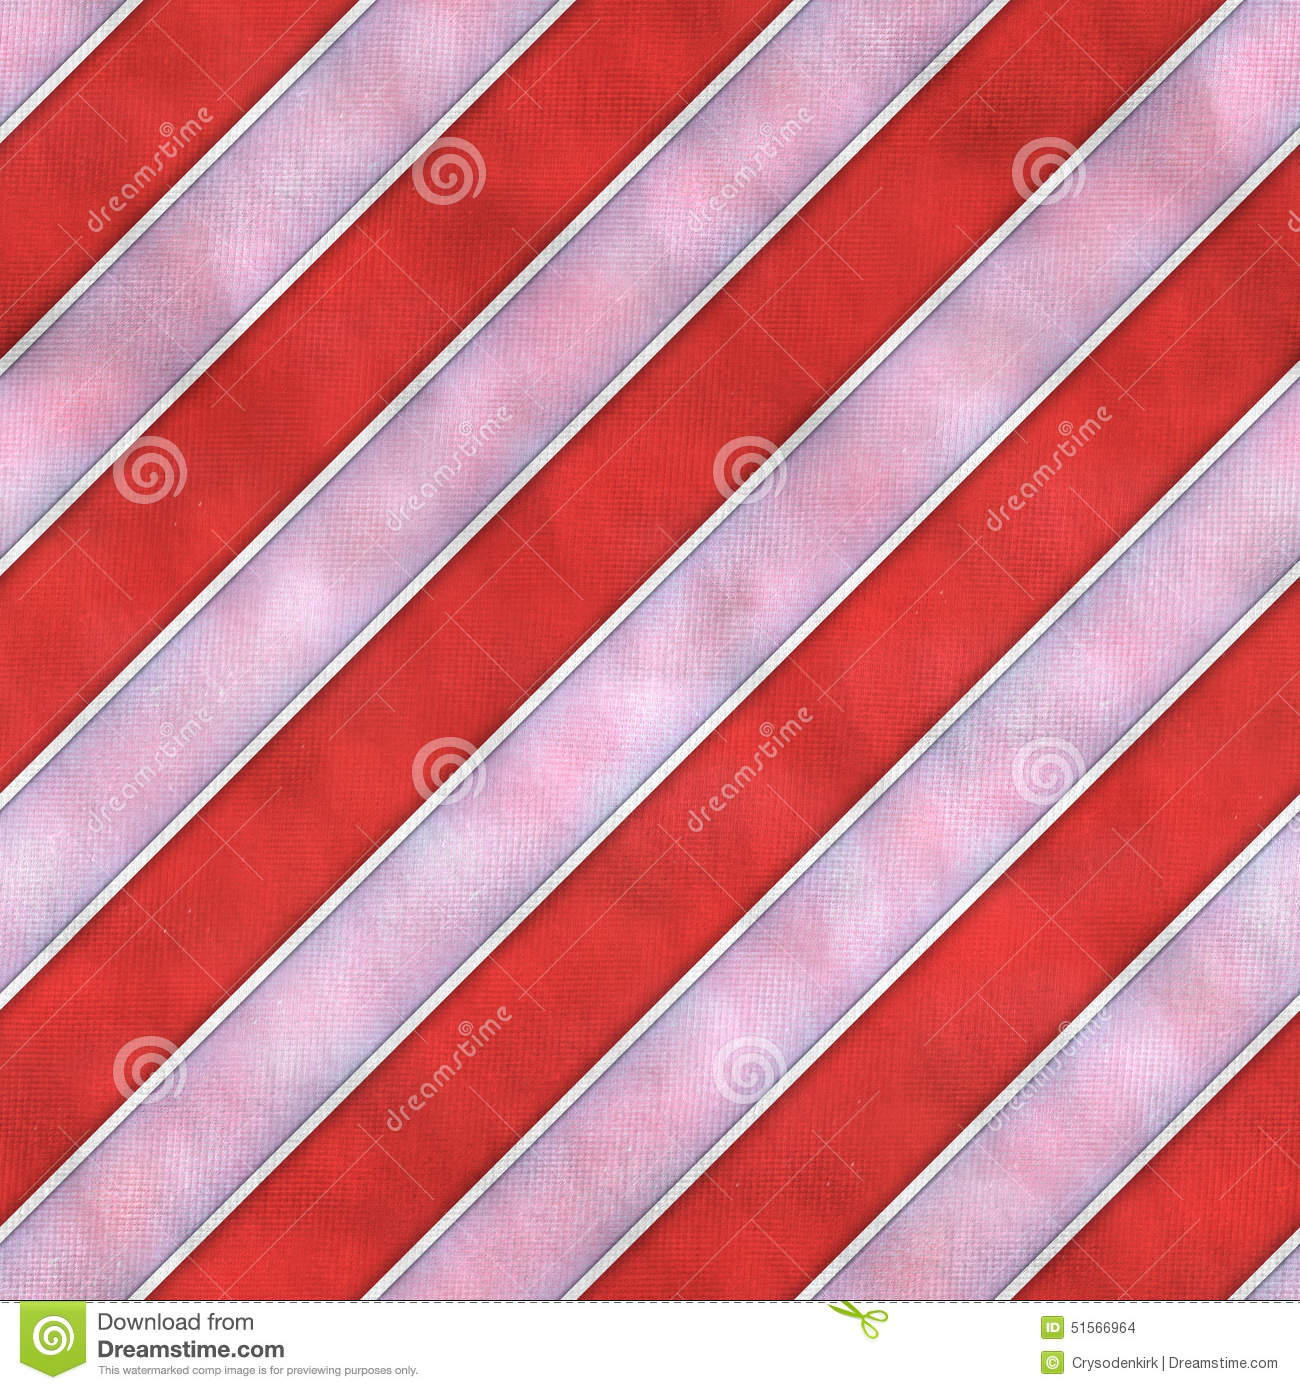 Red and White Striped Cloth Seamless Tile Texture Background